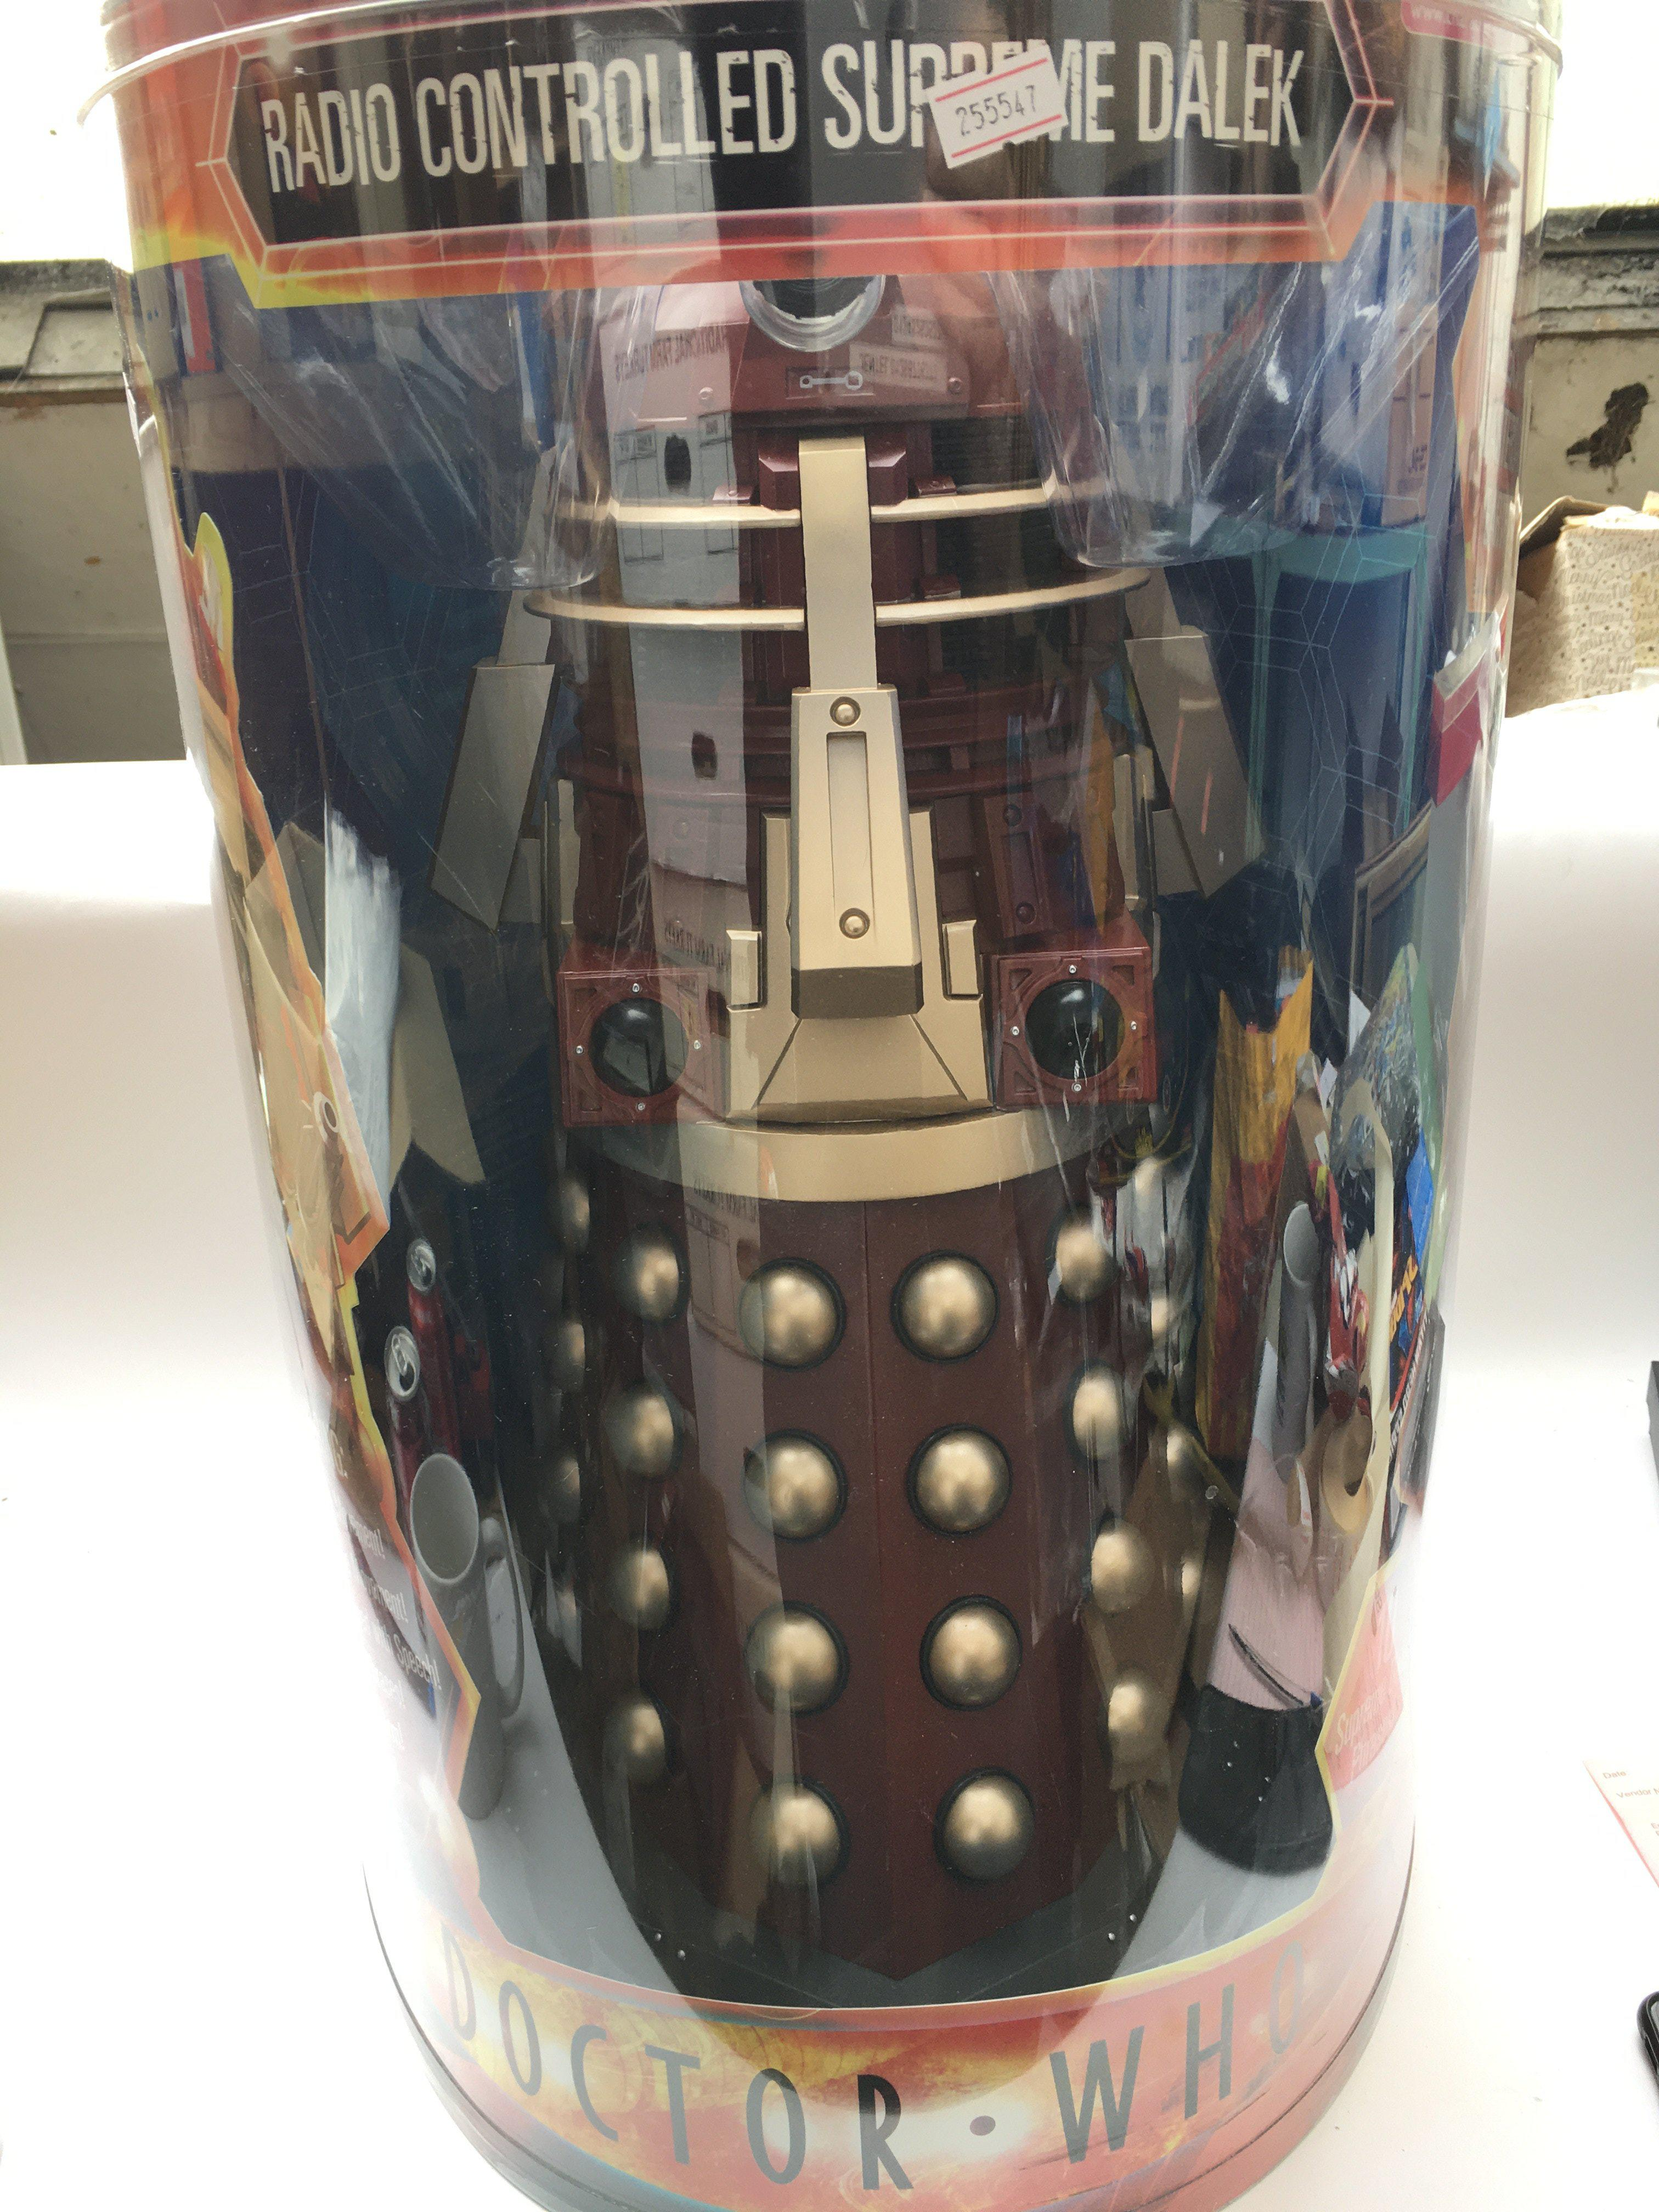 """A 18"""" Radio Controlled Supreme Dalek by Character."""